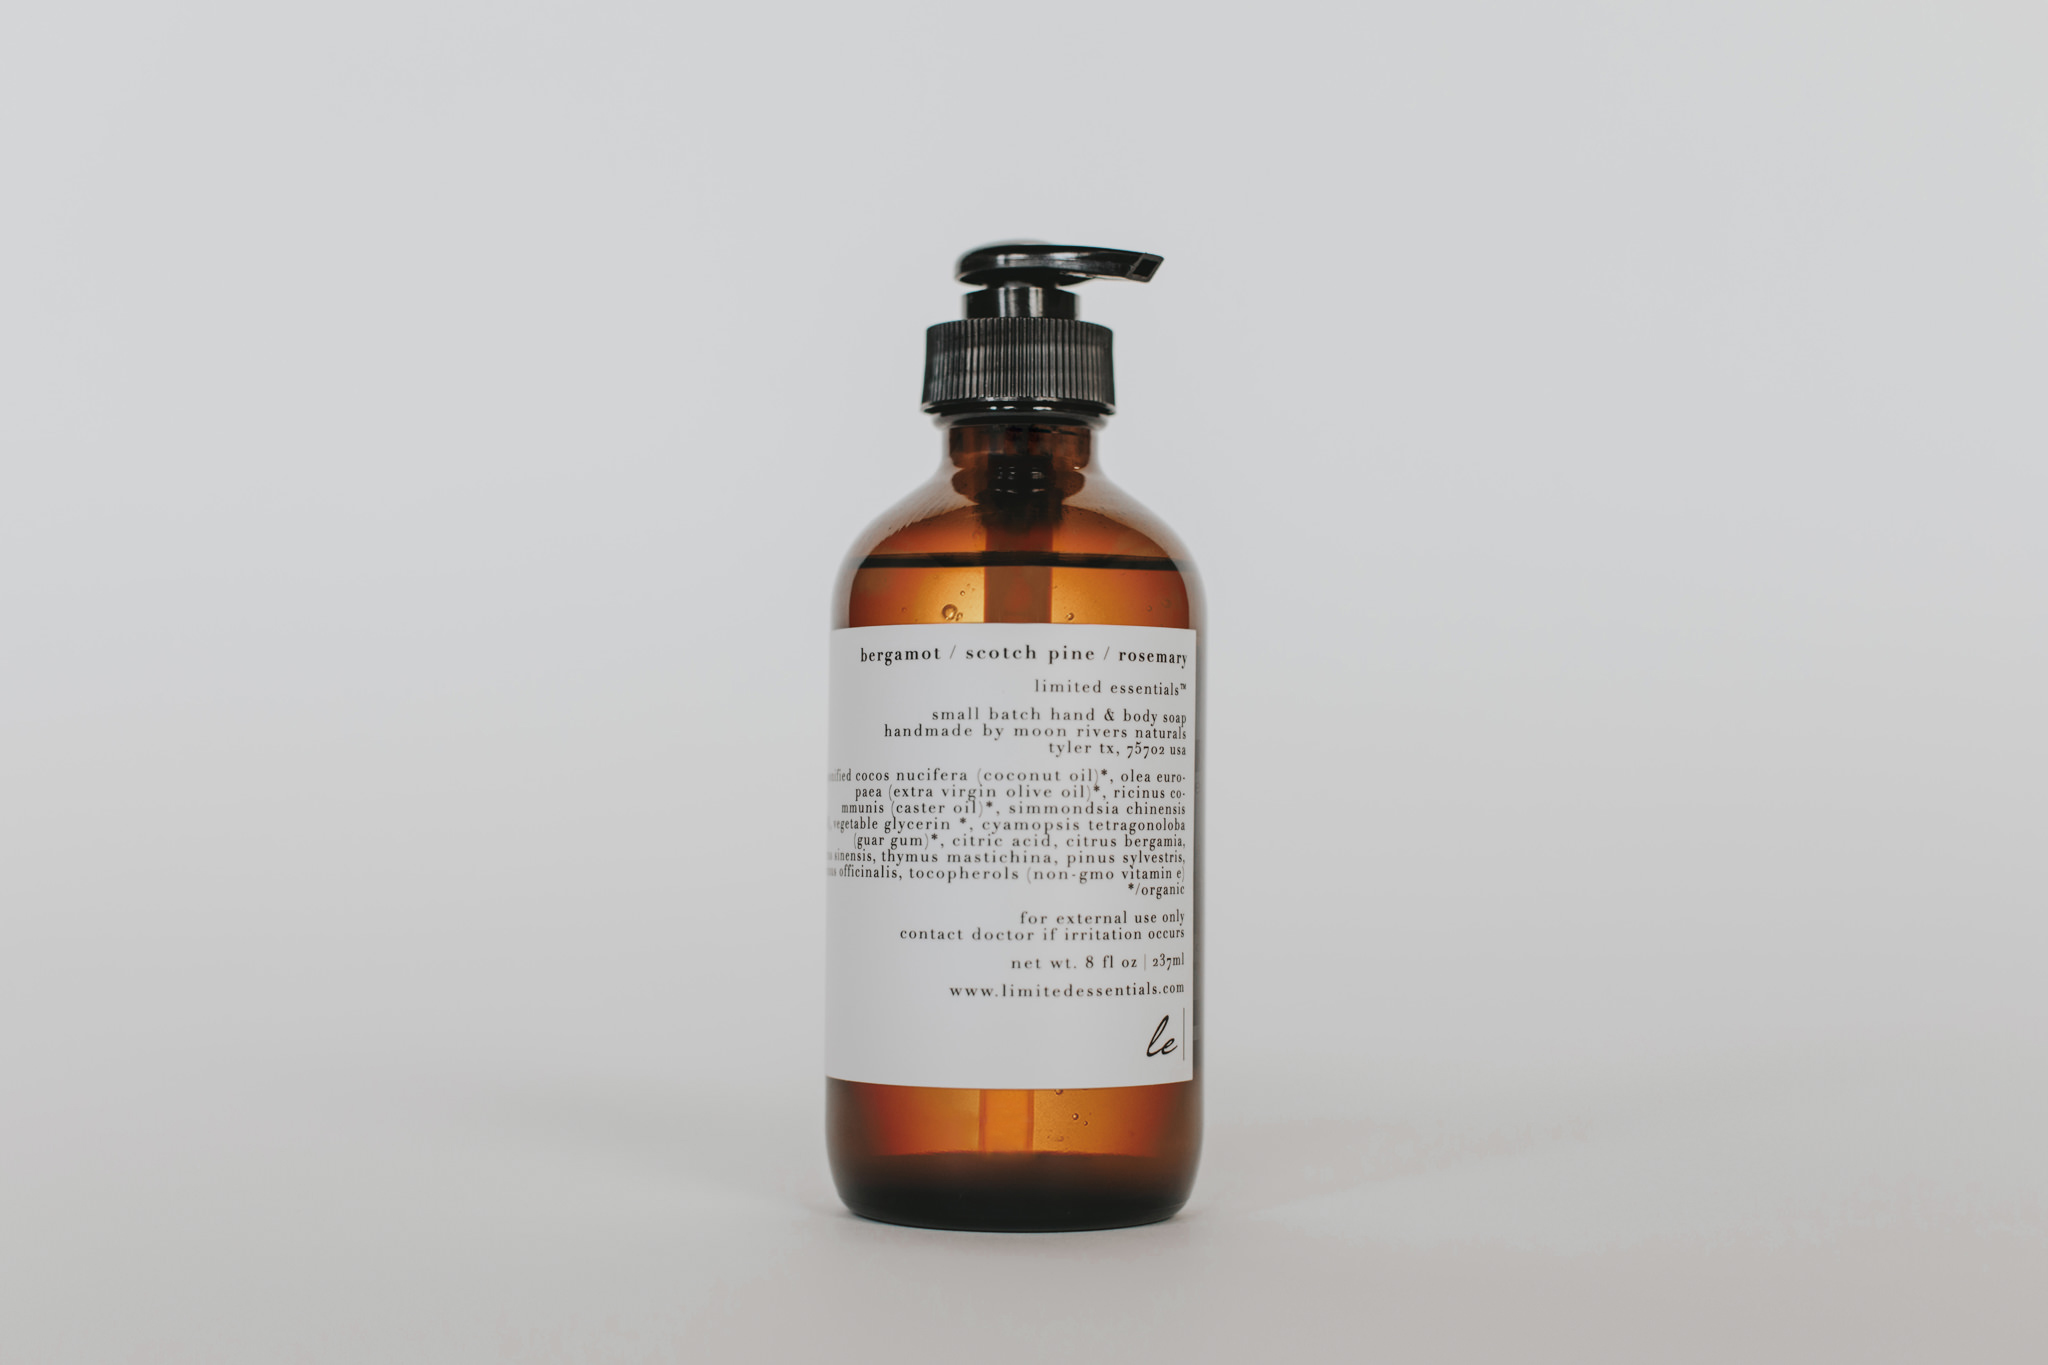 The Soap by Limited Essentials